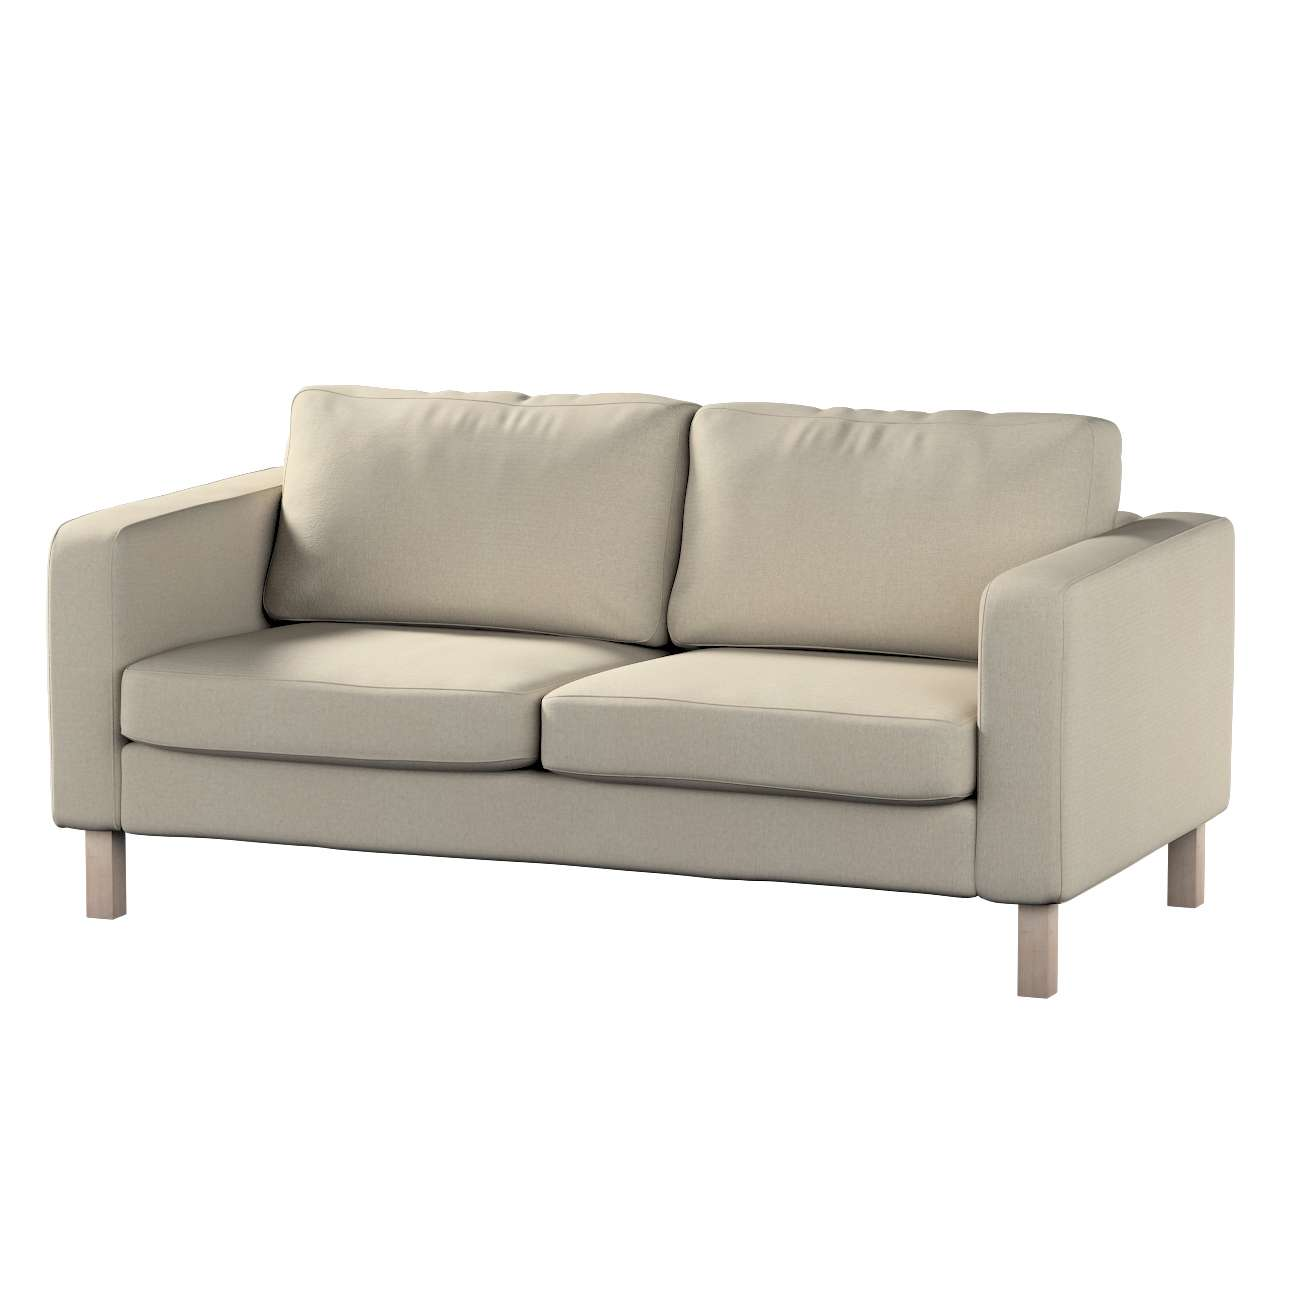 Karlstad 2-seater sofa cover in collection Etna, fabric: 702-39